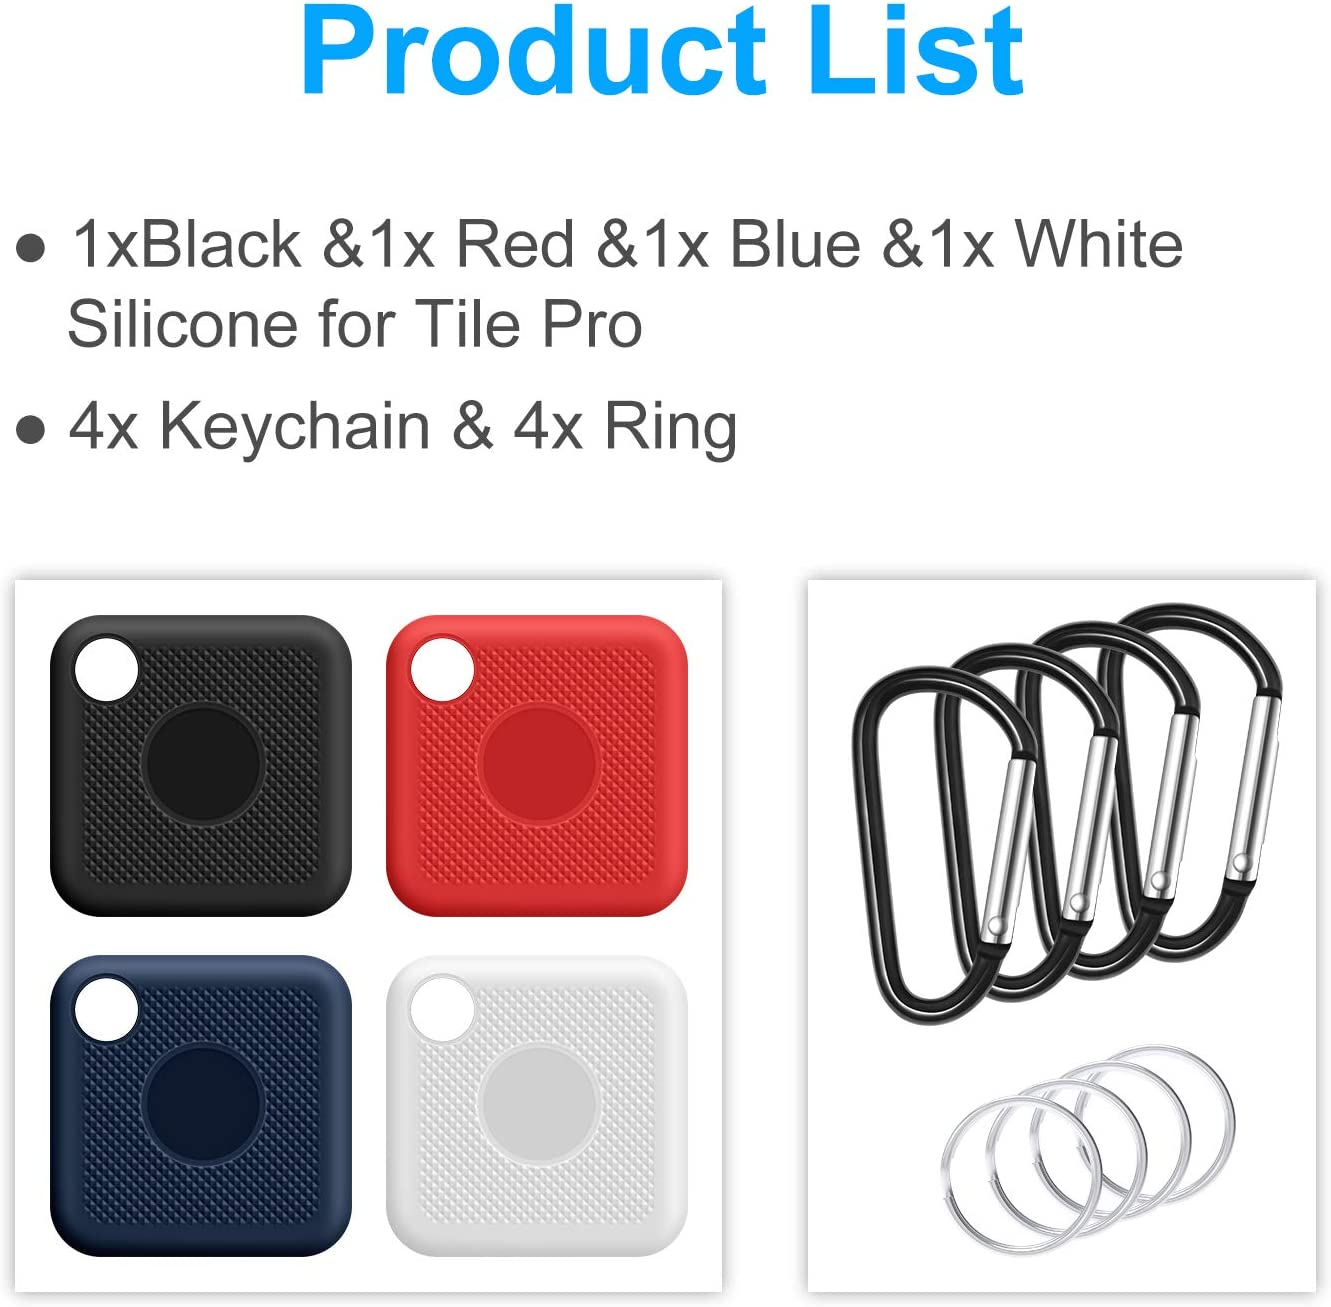 2020 /& 2018 White Black with Keychain 4 Pack Scratch//Shock Resistant Silicone Case Cover Blue Silicone Case Compatible with Tile Pro Red Full Body Protection